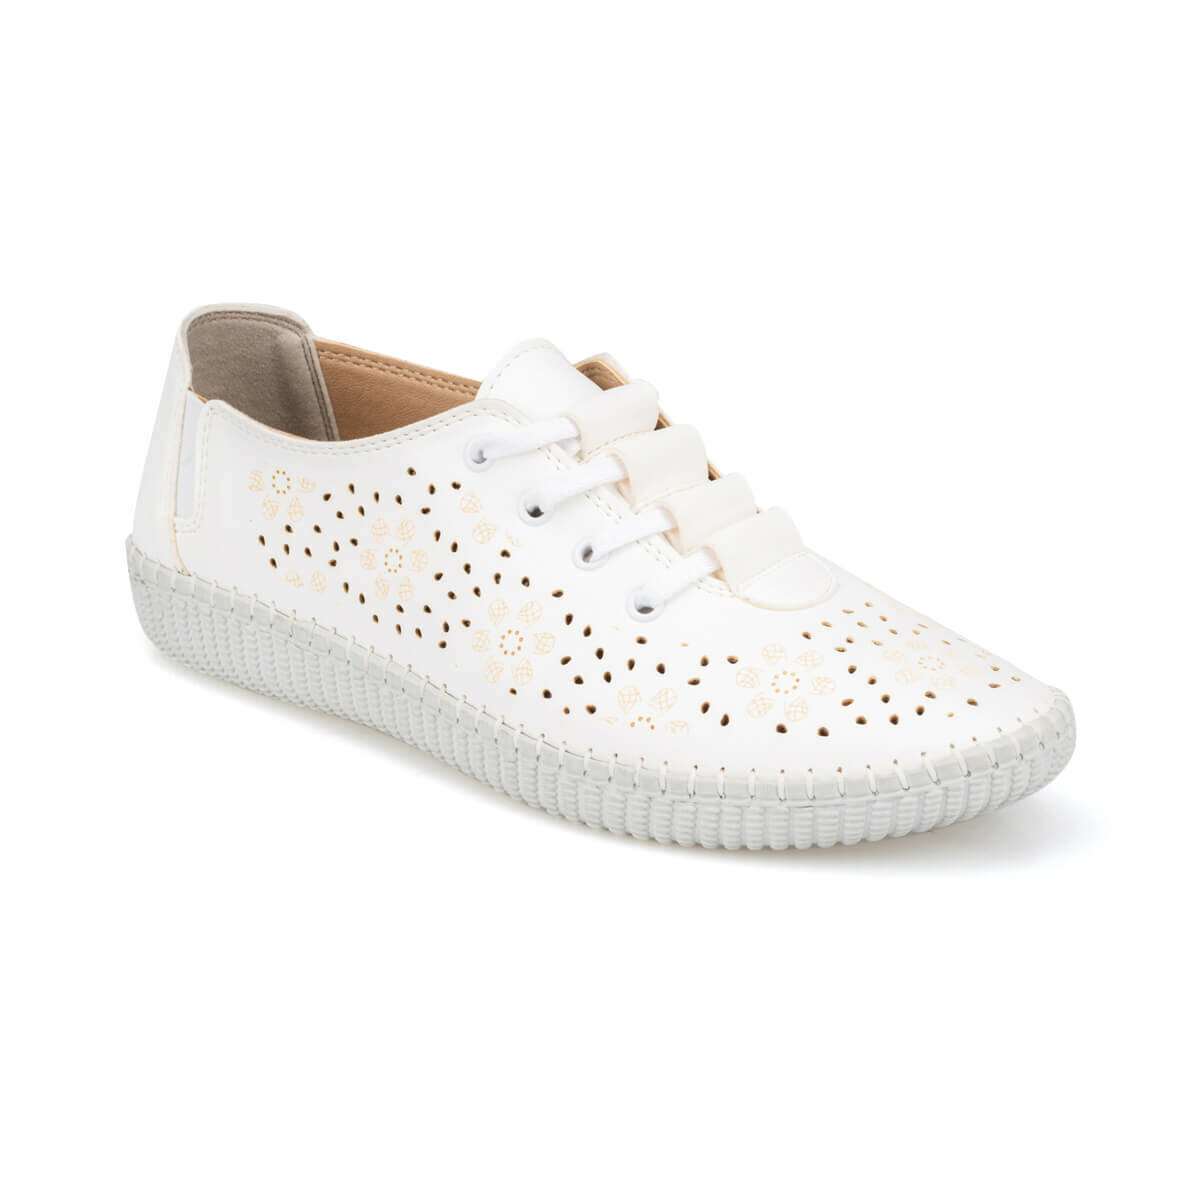 FLO 91.158416.Z White Women 'S Shoes Polaris